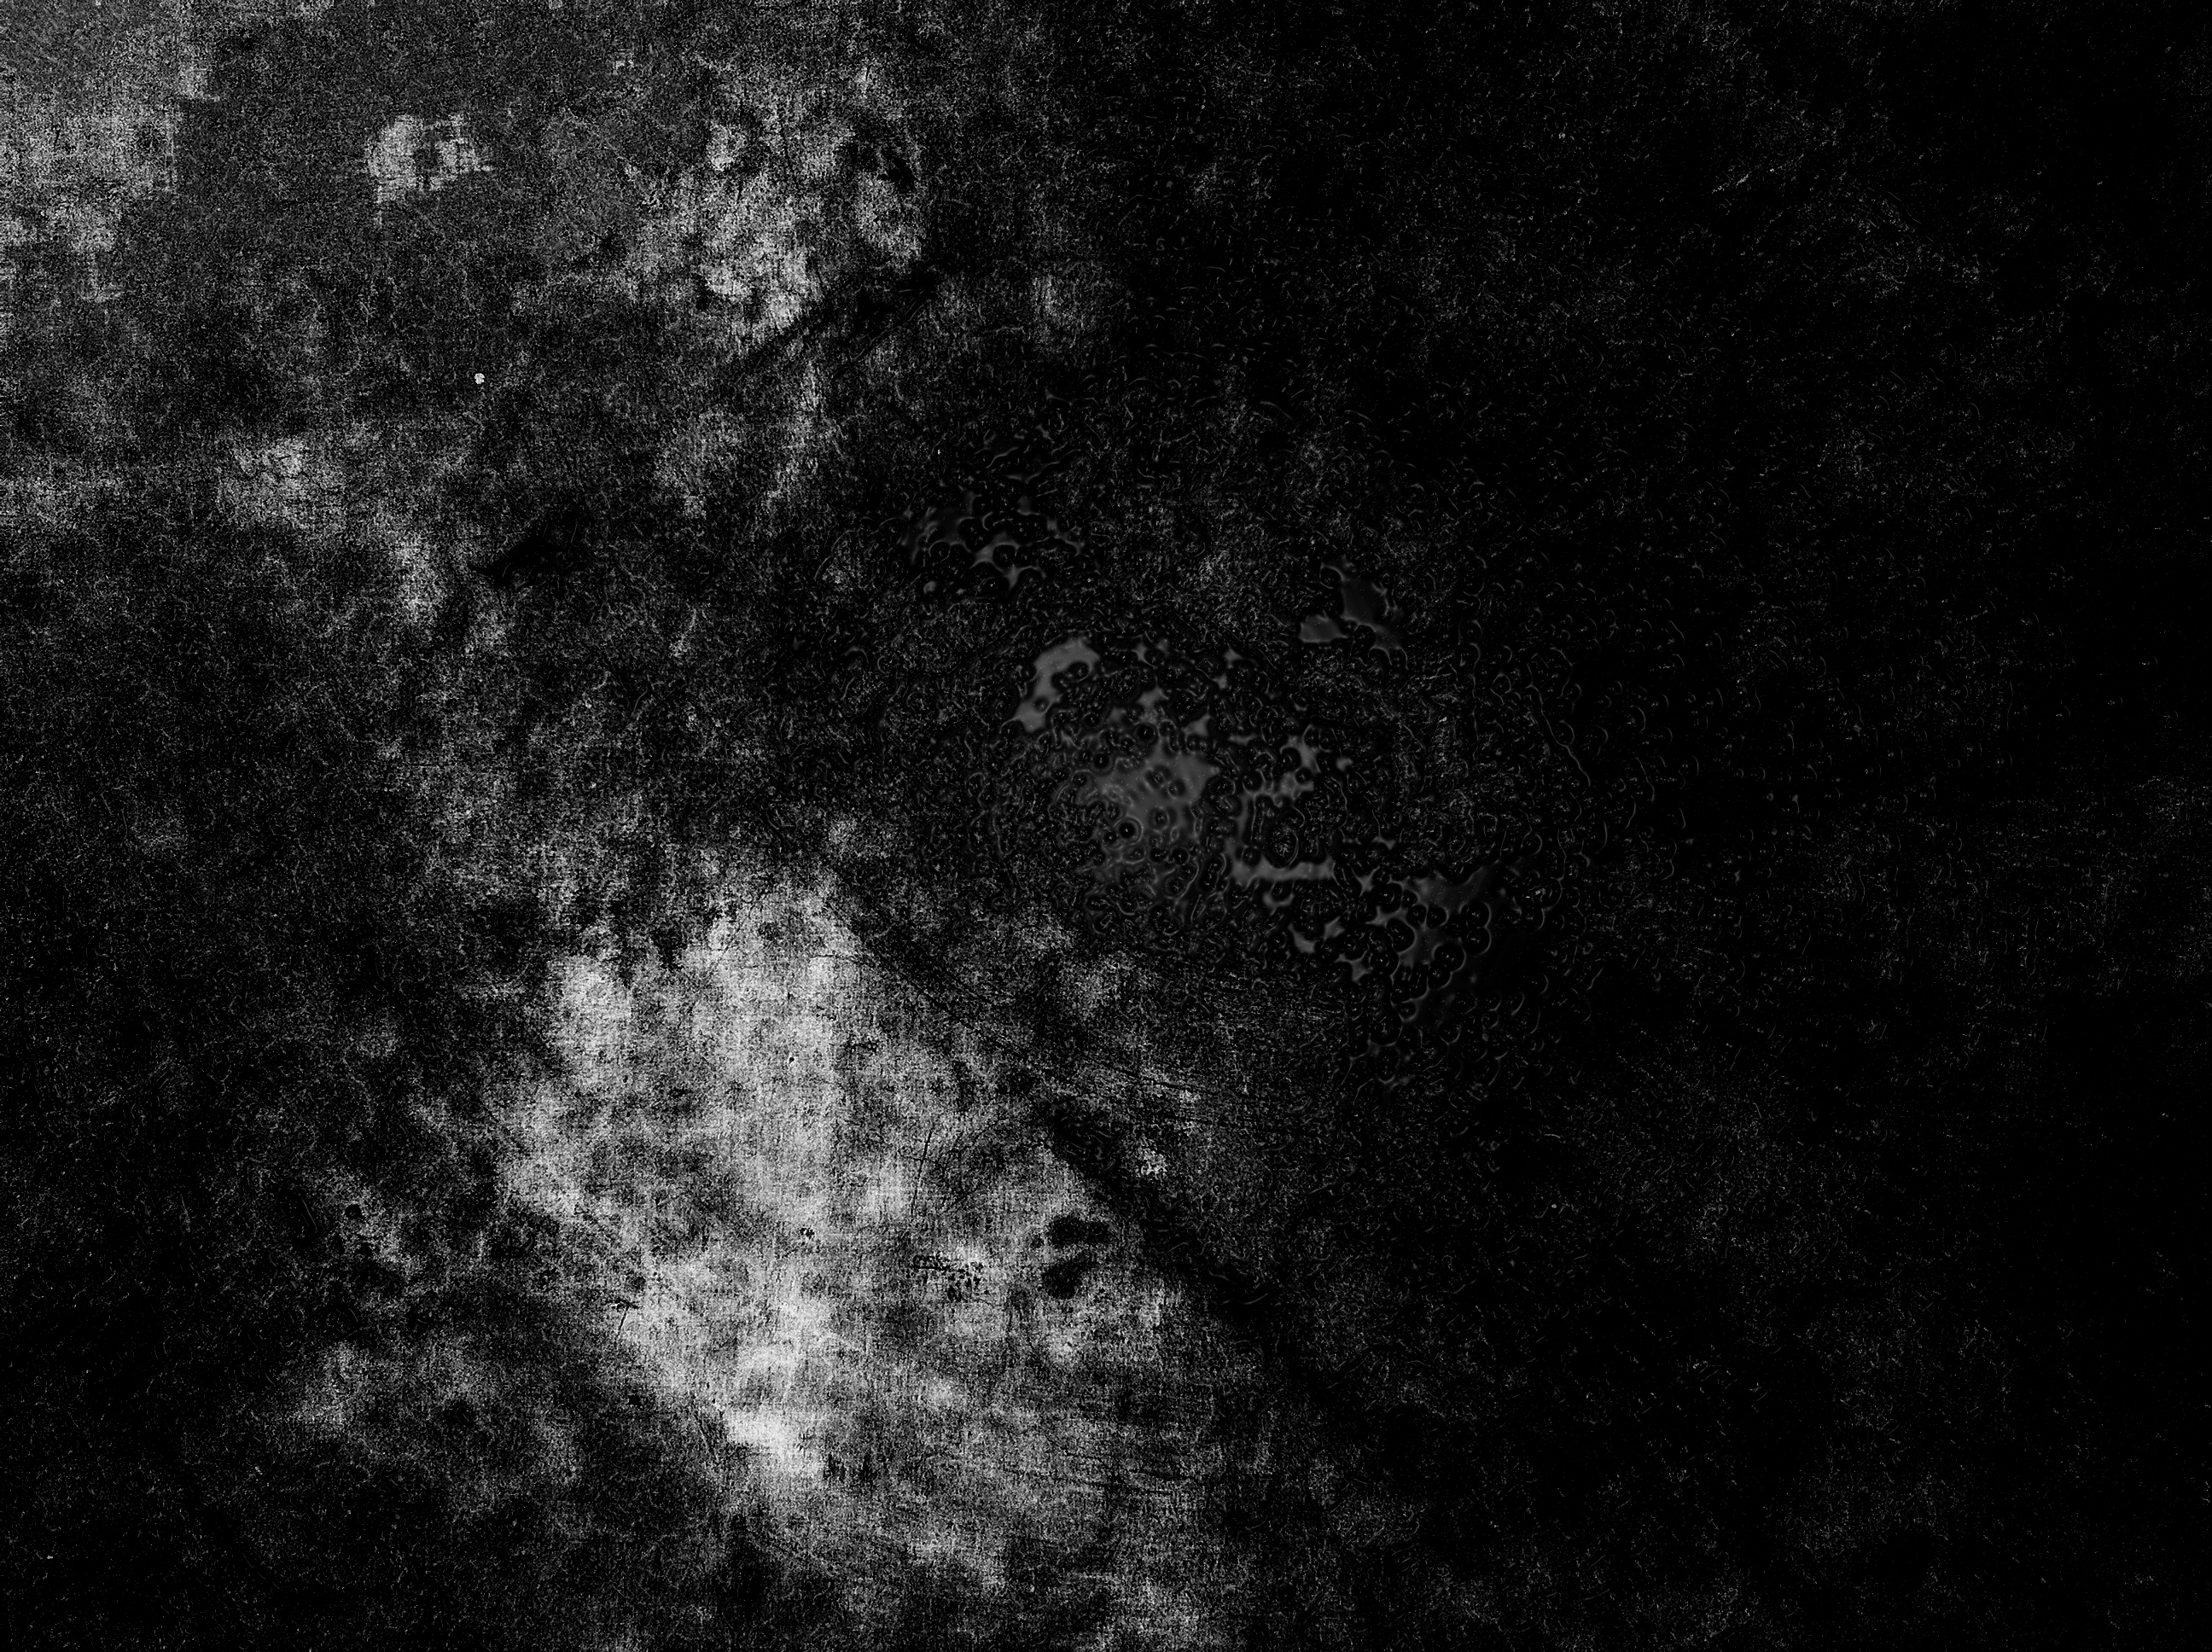 backgrounds wallpaper wallpapers grunge - photo #47